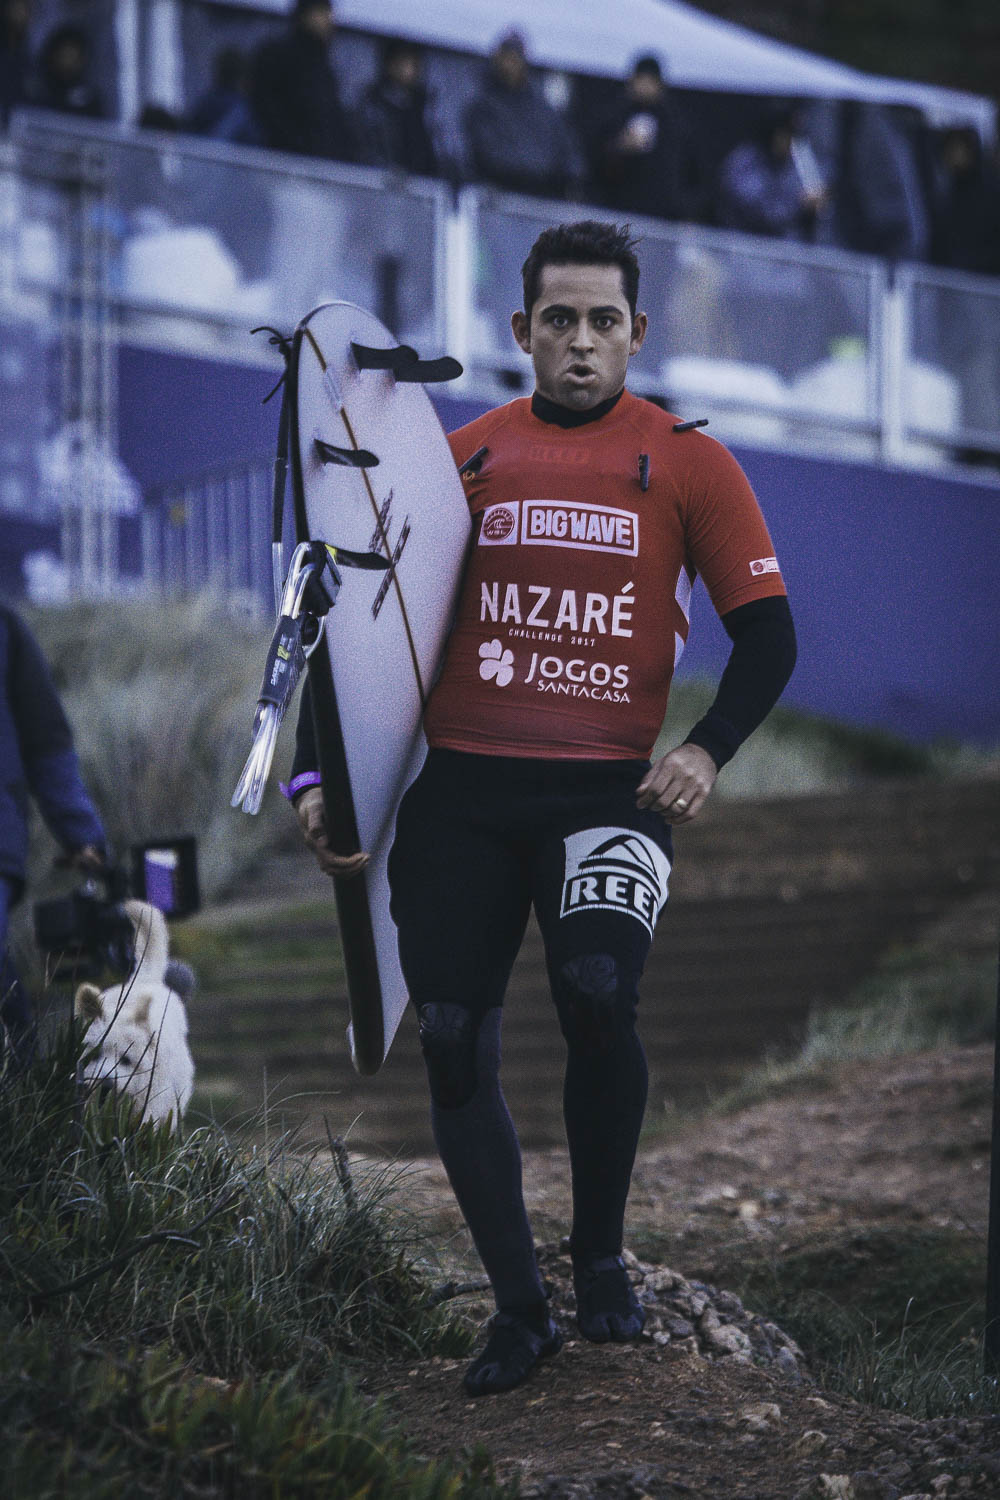 Oliver Blackwell Photography Nazare challenge-1-17.jpg